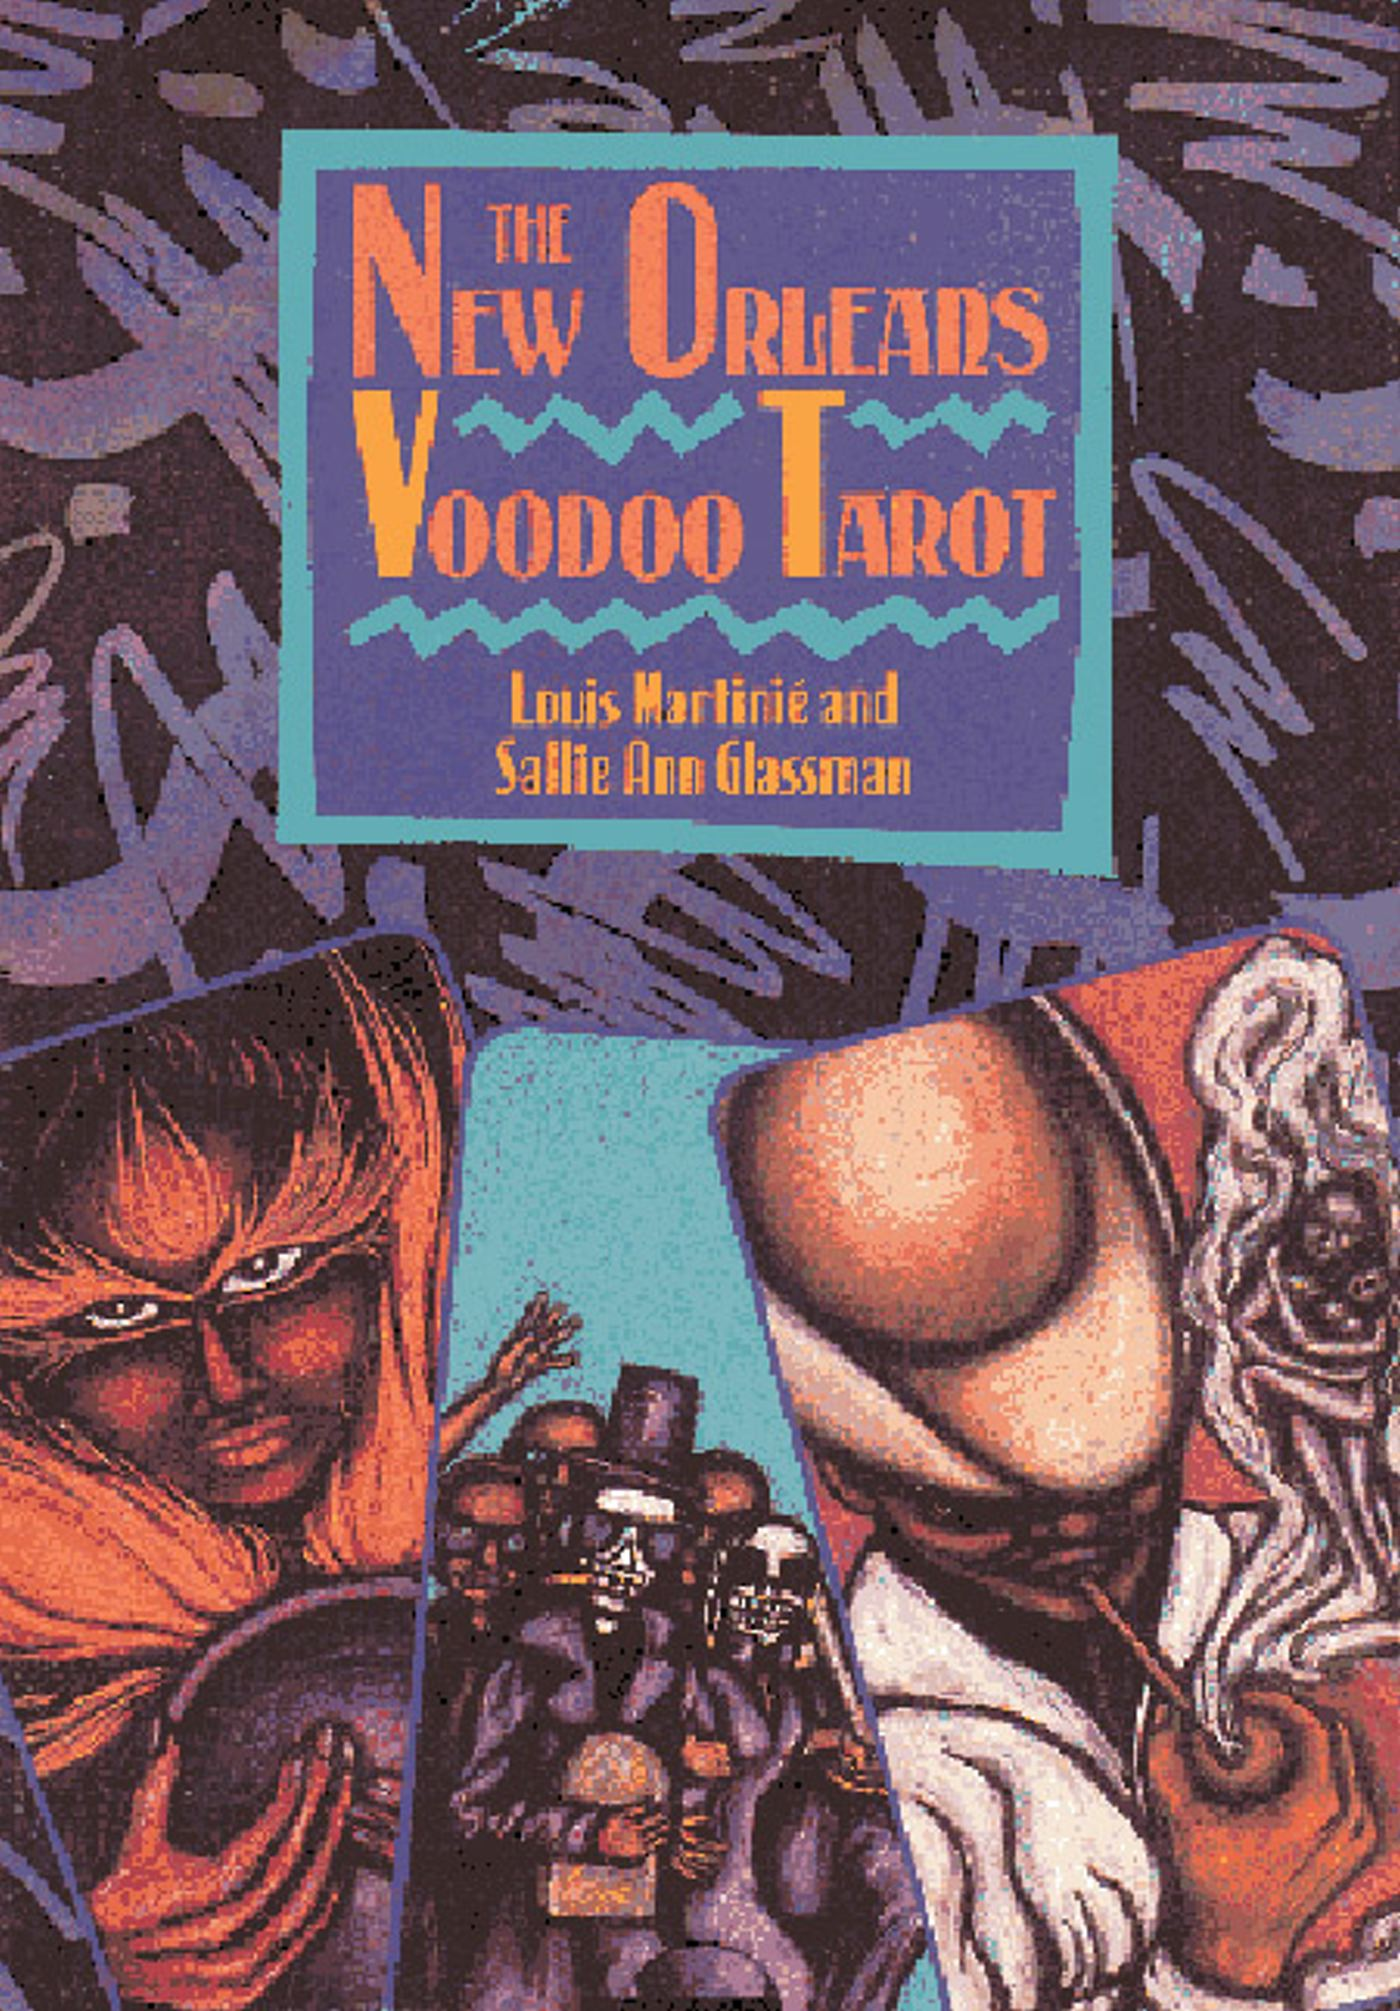 The new orleans voodoo tarot 9780892813636 hr